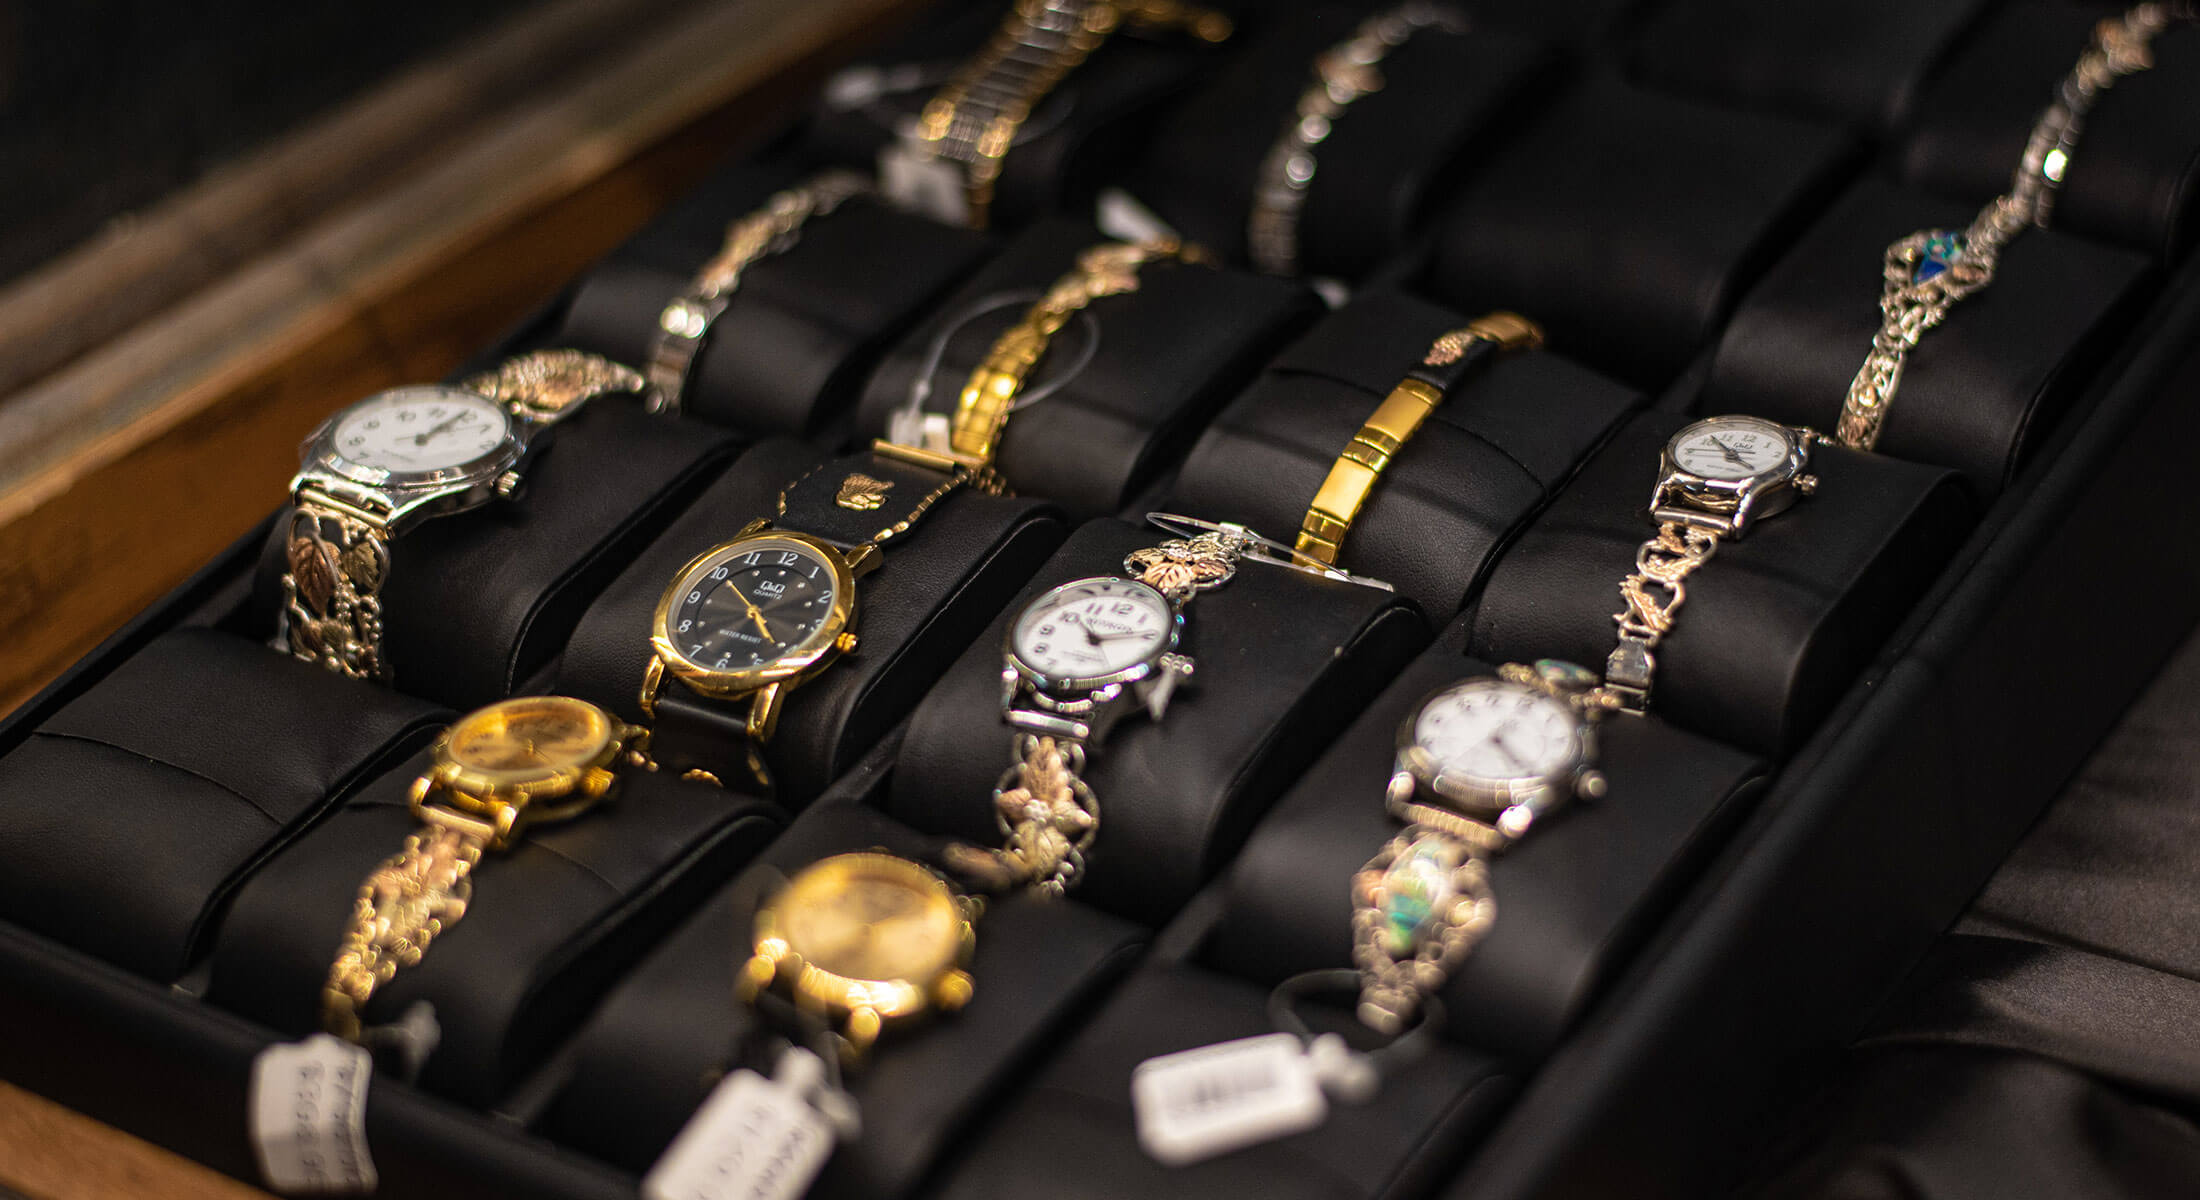 Black Hills Gold Watches for sale from Rapid City Gold Diggers